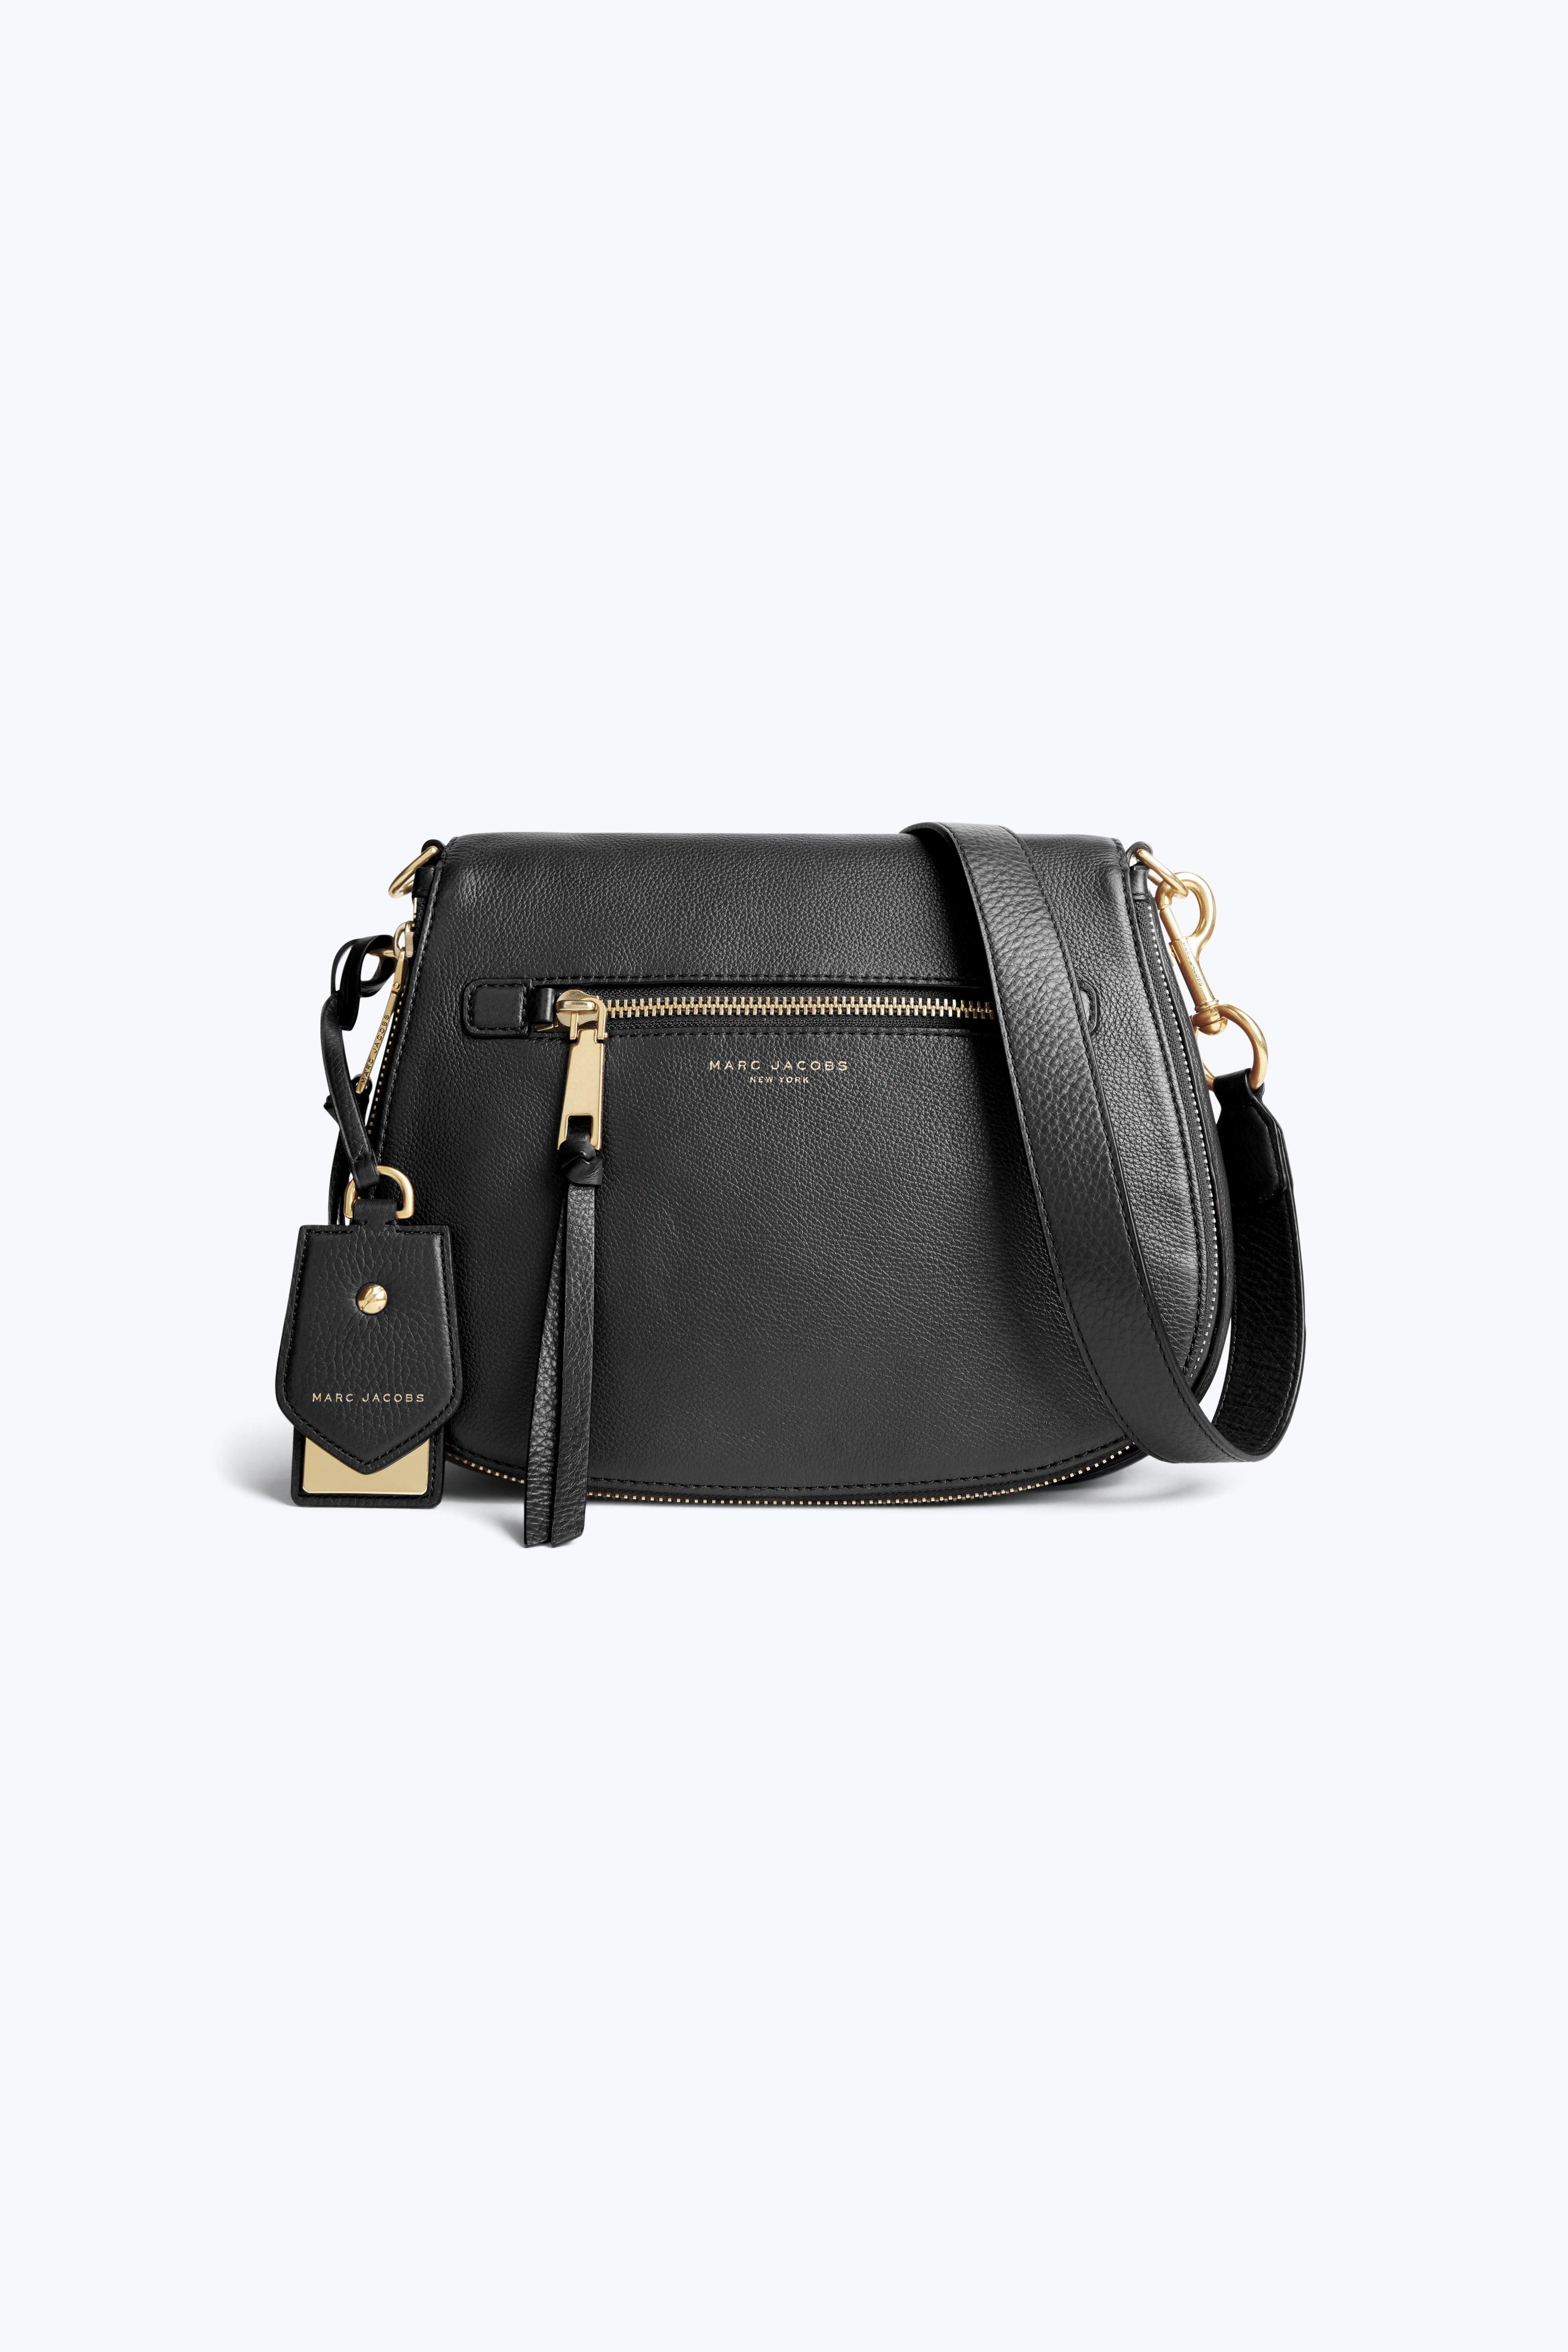 03818852a6 MARC JACOBS Recruit Small Nomad Saddle.  marcjacobs  bags